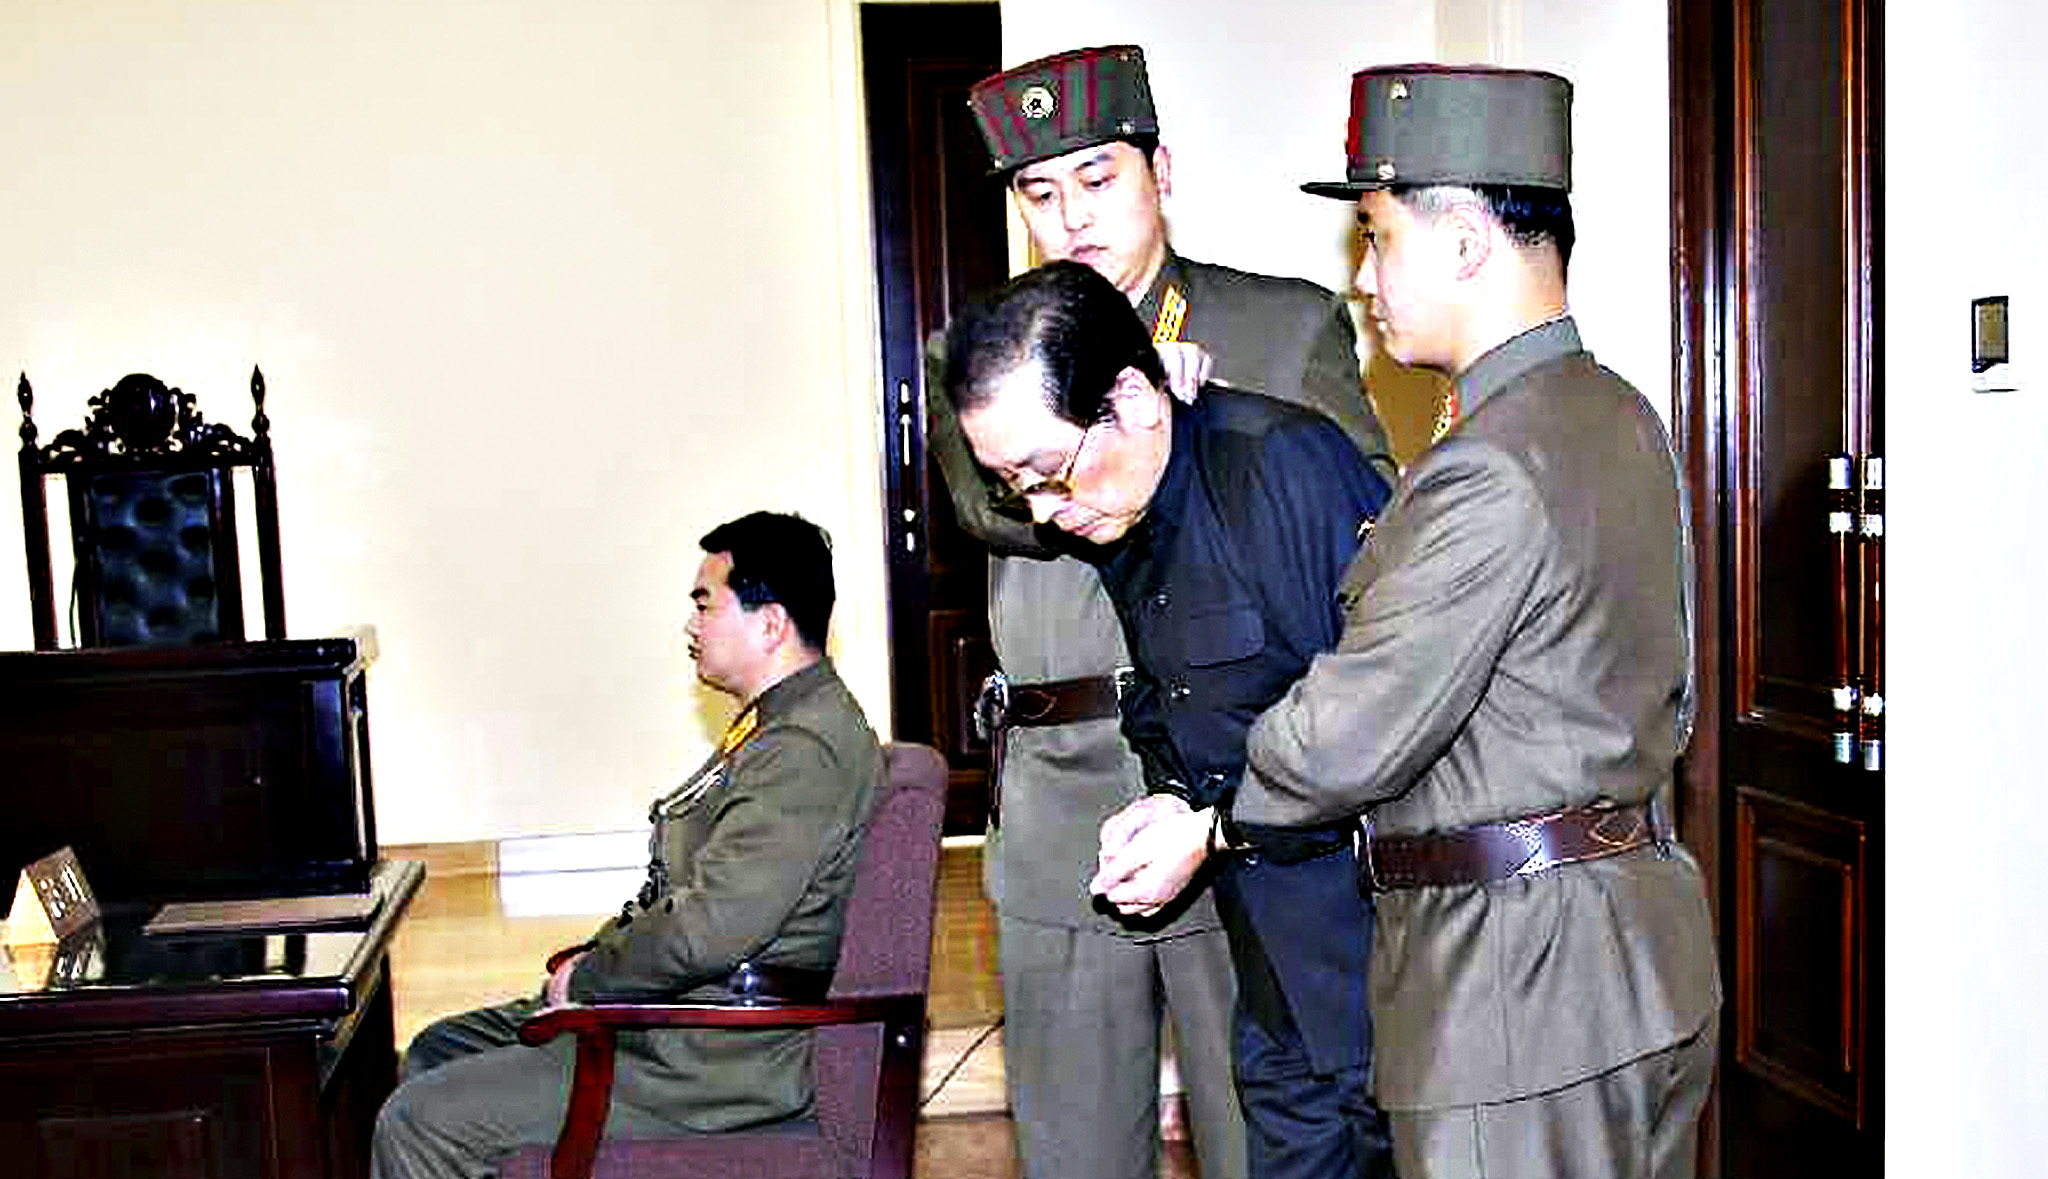 Jang Song Thaek, with his hands tied with a rope, is dragged into the court by uniformed personnel in this December 13, 2013 picture taken from Rodong Sinmun December 12, 2013 and released by Yonhap. North Korea said on Friday that Jang, the uncle of leader Kim Jong Un, previously considered the second most powerful man in the secretive state, has been executed for treason, the biggest upheaval since the death of Kim's father two years ago.